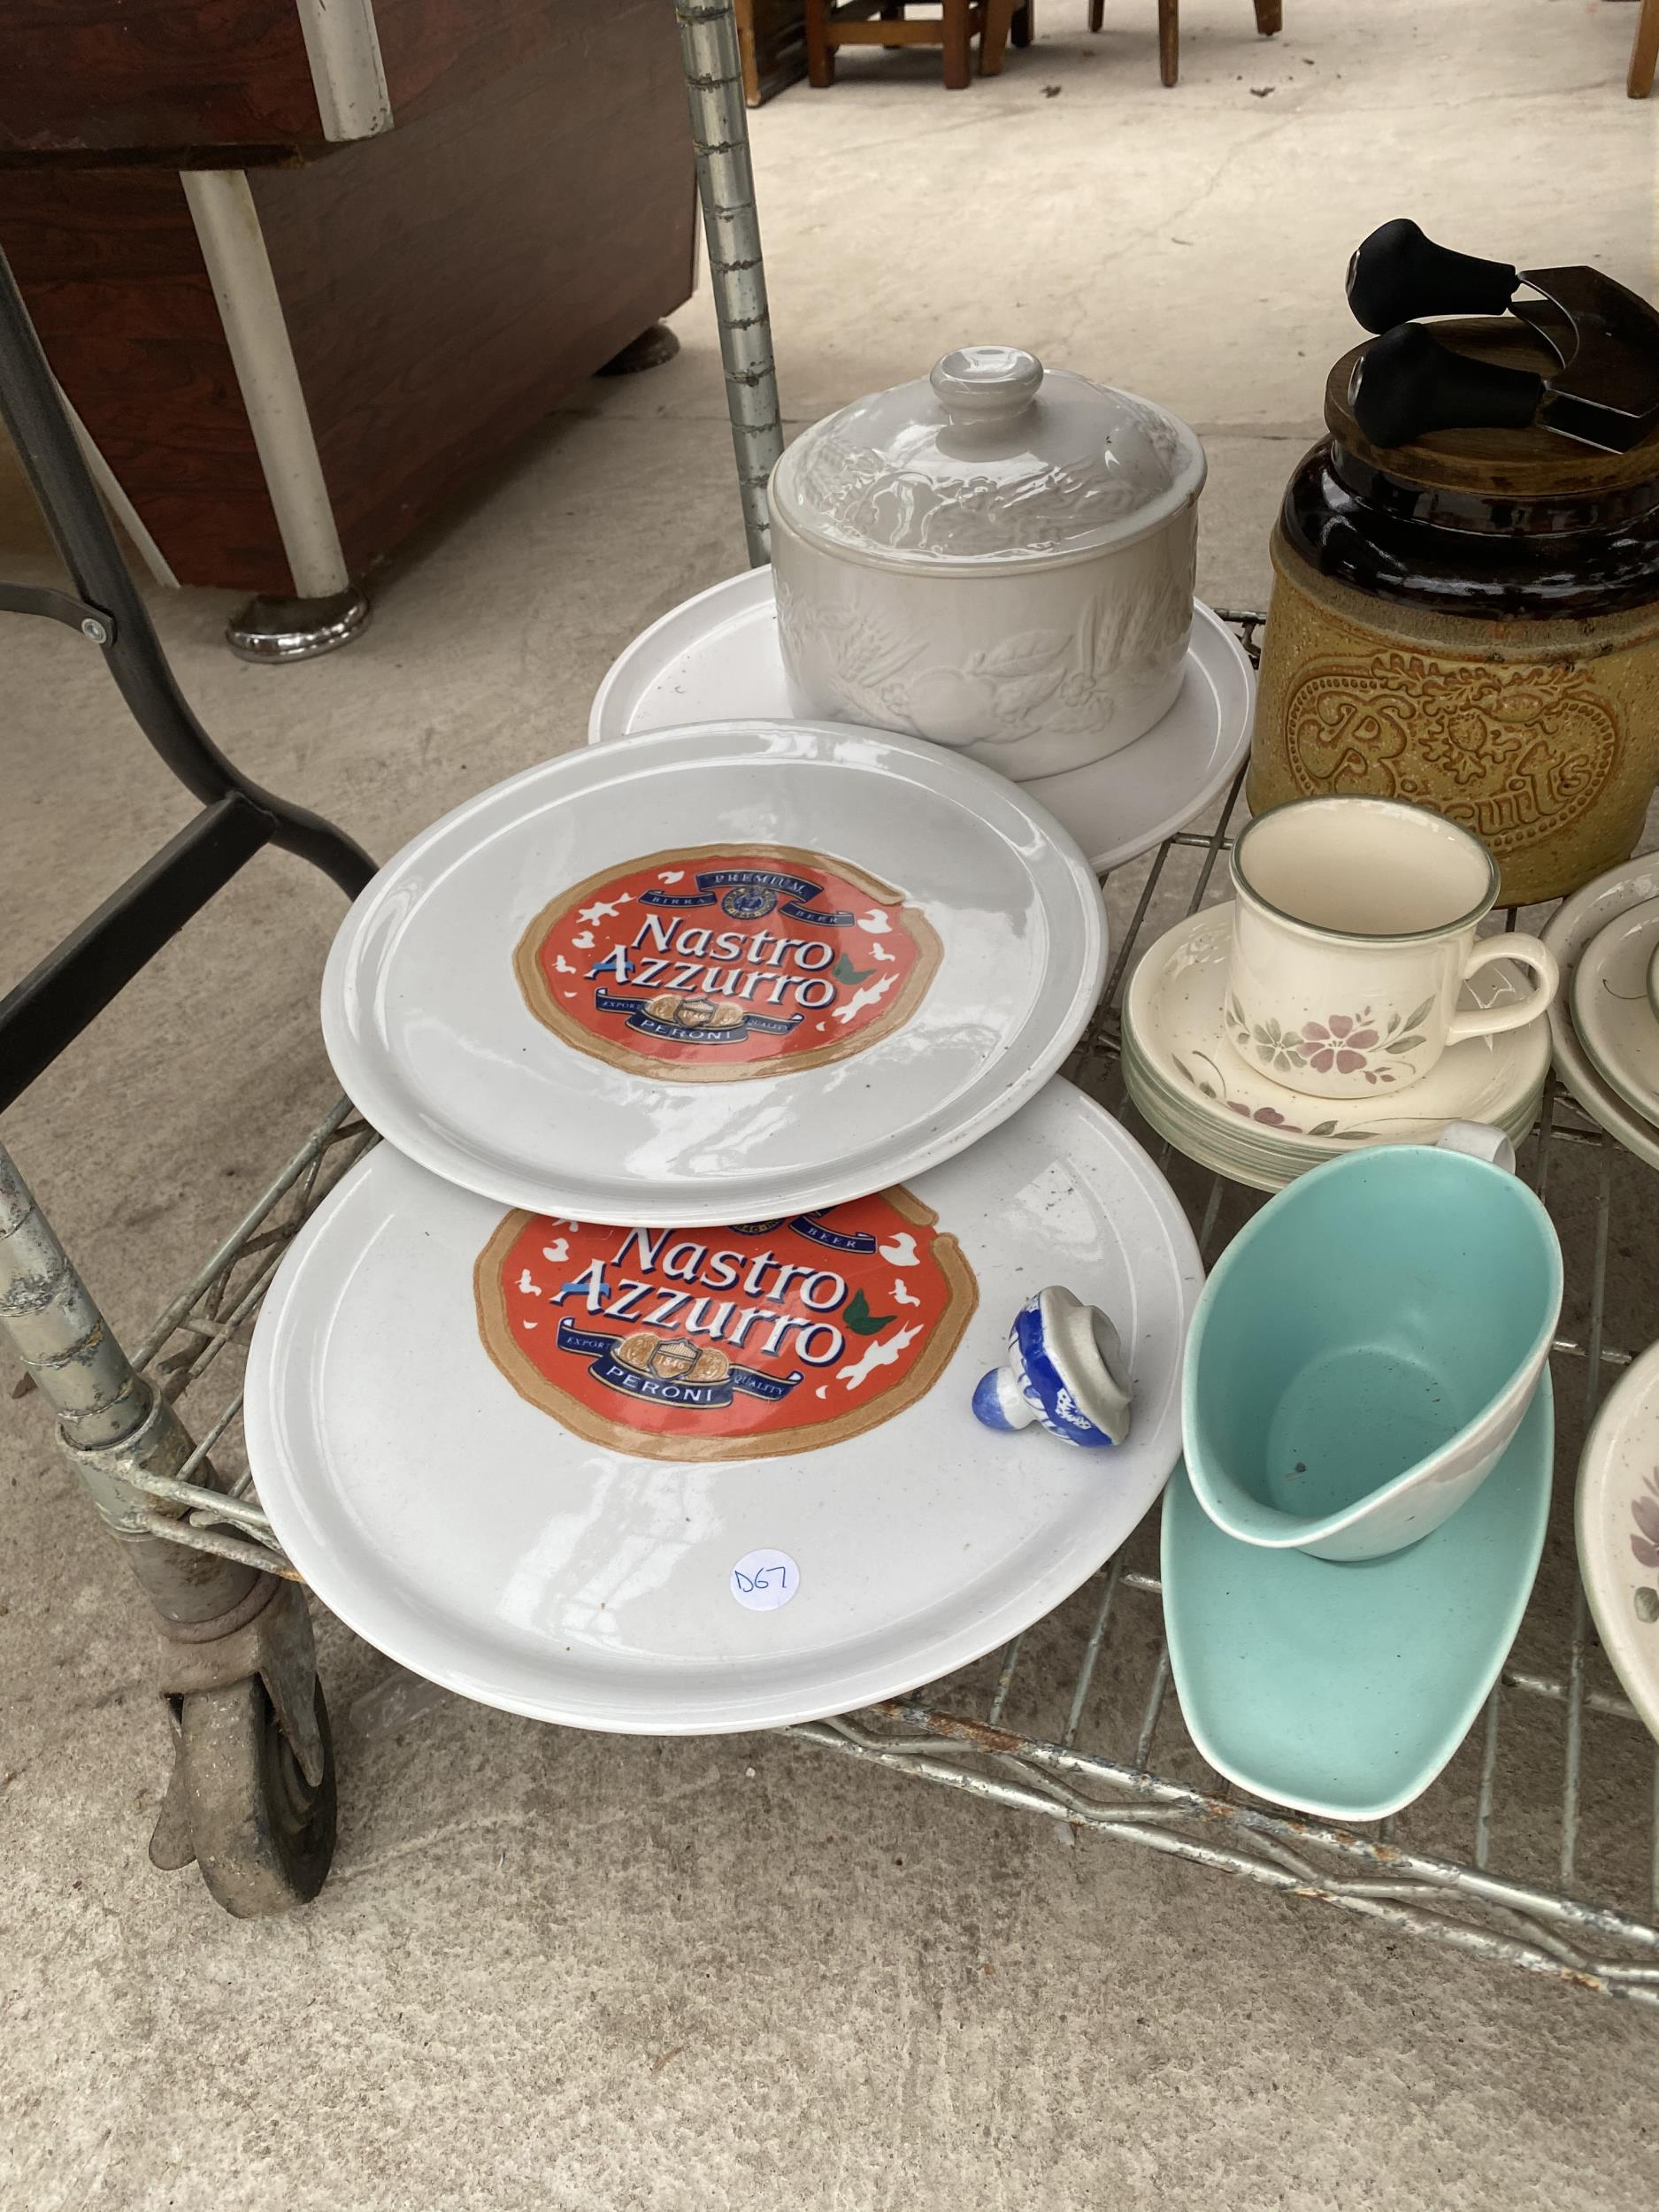 AN ASSORTMENT OF CERAMIC WARE TO INCLUDE PLATES, JUGS, AND TRIOS ETC - Image 3 of 4